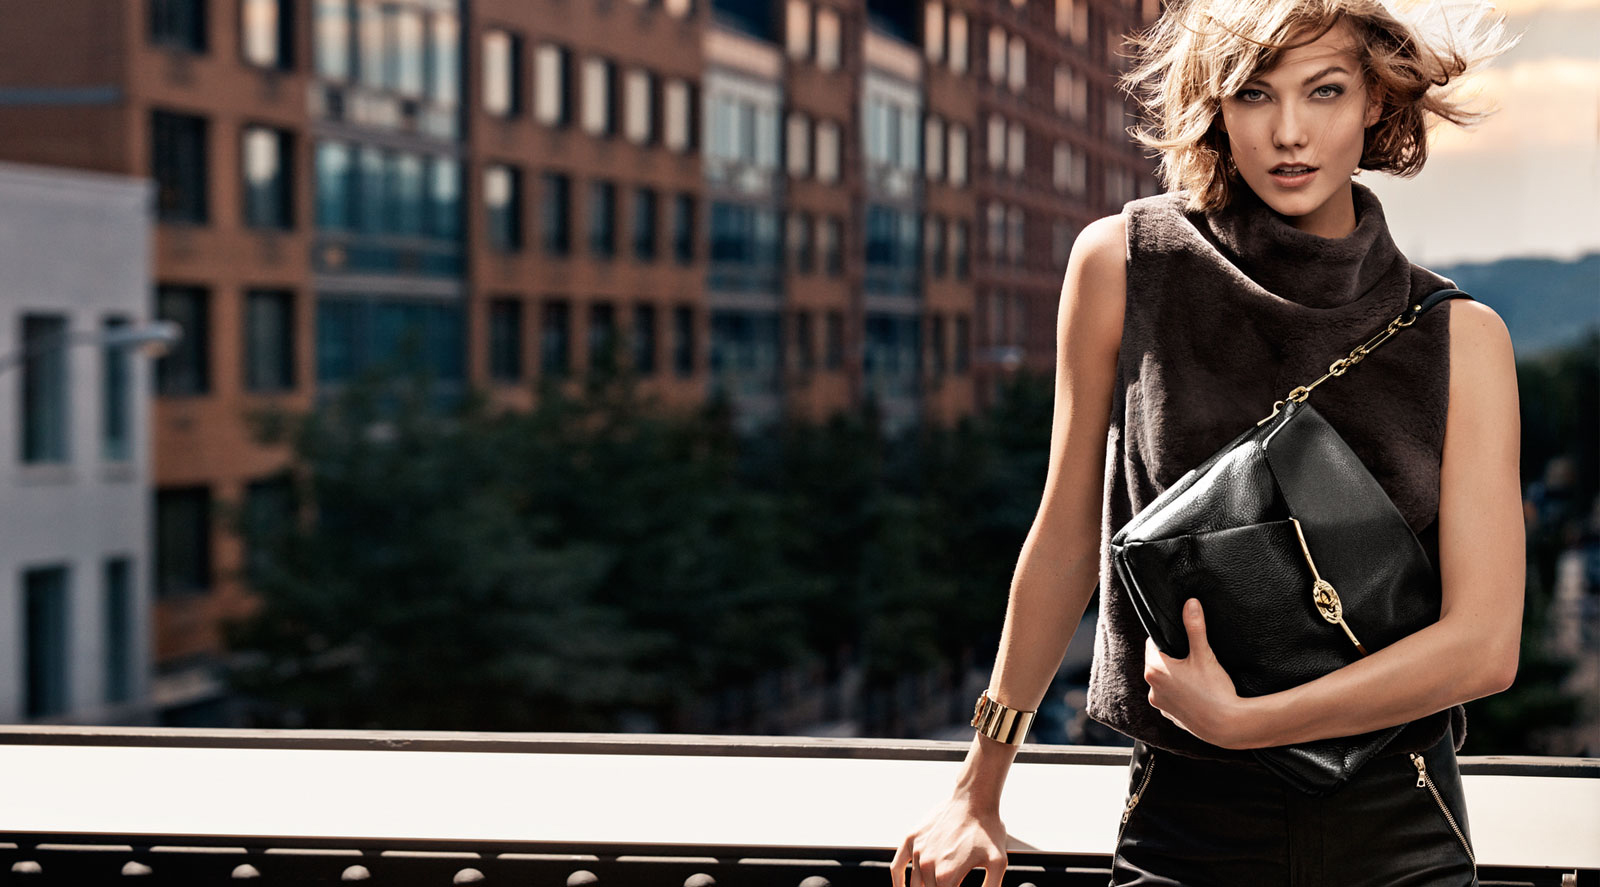 Beautiful Model Karlie Kloss Modeling For Coach Handbags Fashion Advertisements And Coach Fashion Ads Modeling As One Of The Highest Paid Models In The World. The World's Highest Paid Models.